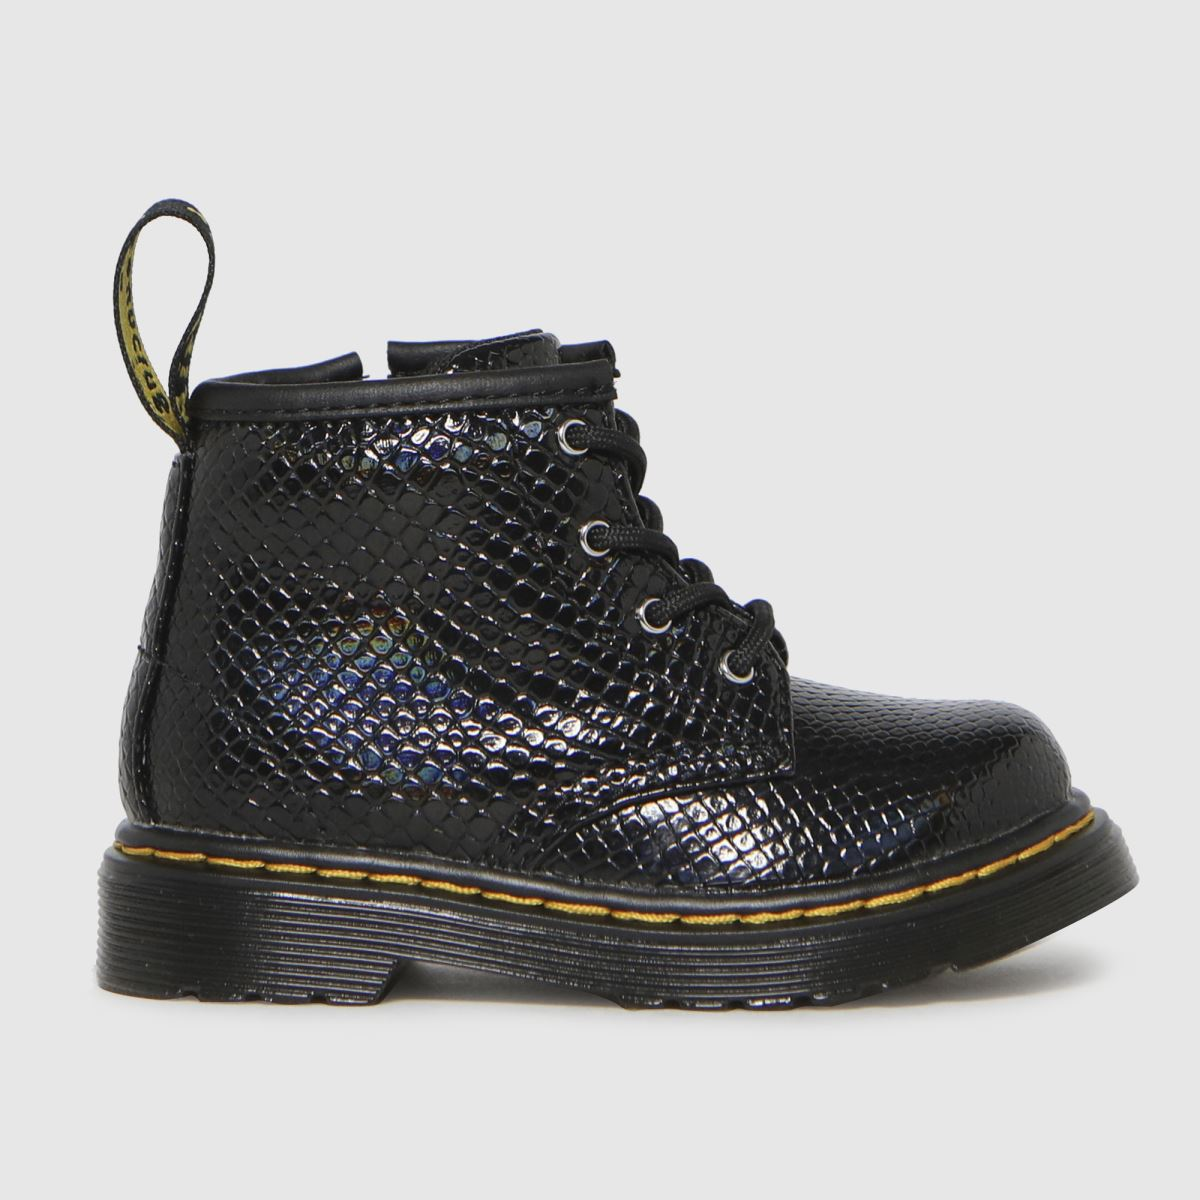 Dr Martens Black 1460 Boots Toddler